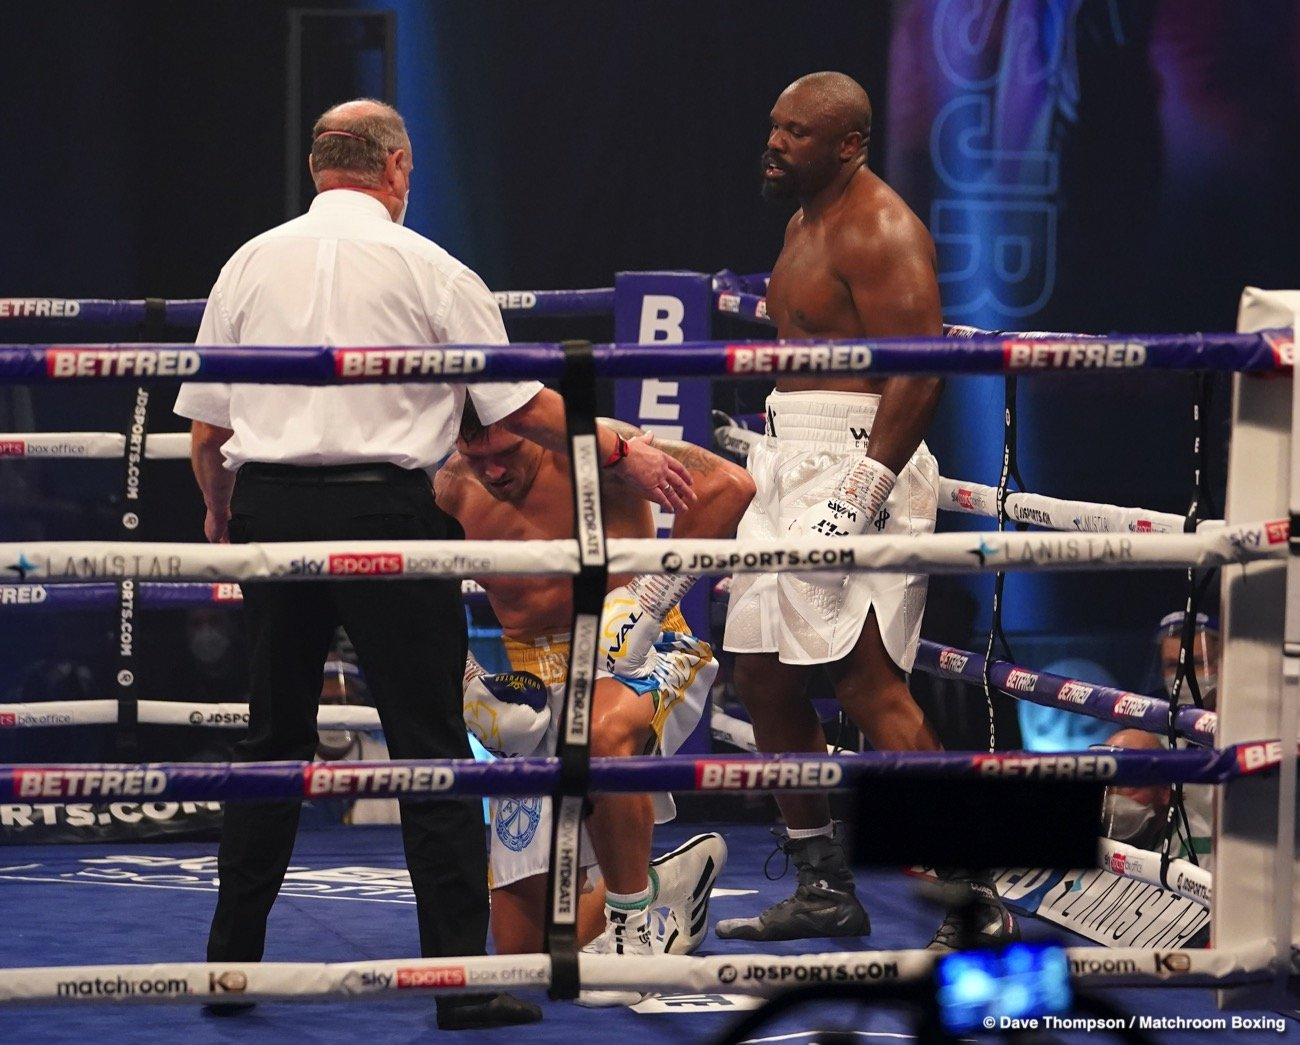 Alexander Usyk, Derek Chisora - Dereck Chisora says he's not retiring from boxing after losing a disappointing 12 round unanimous decision to former undisputed cruiserweight champion Oleksandr Usyk last Saturday night at the Wembley Arena in Wembley, England.